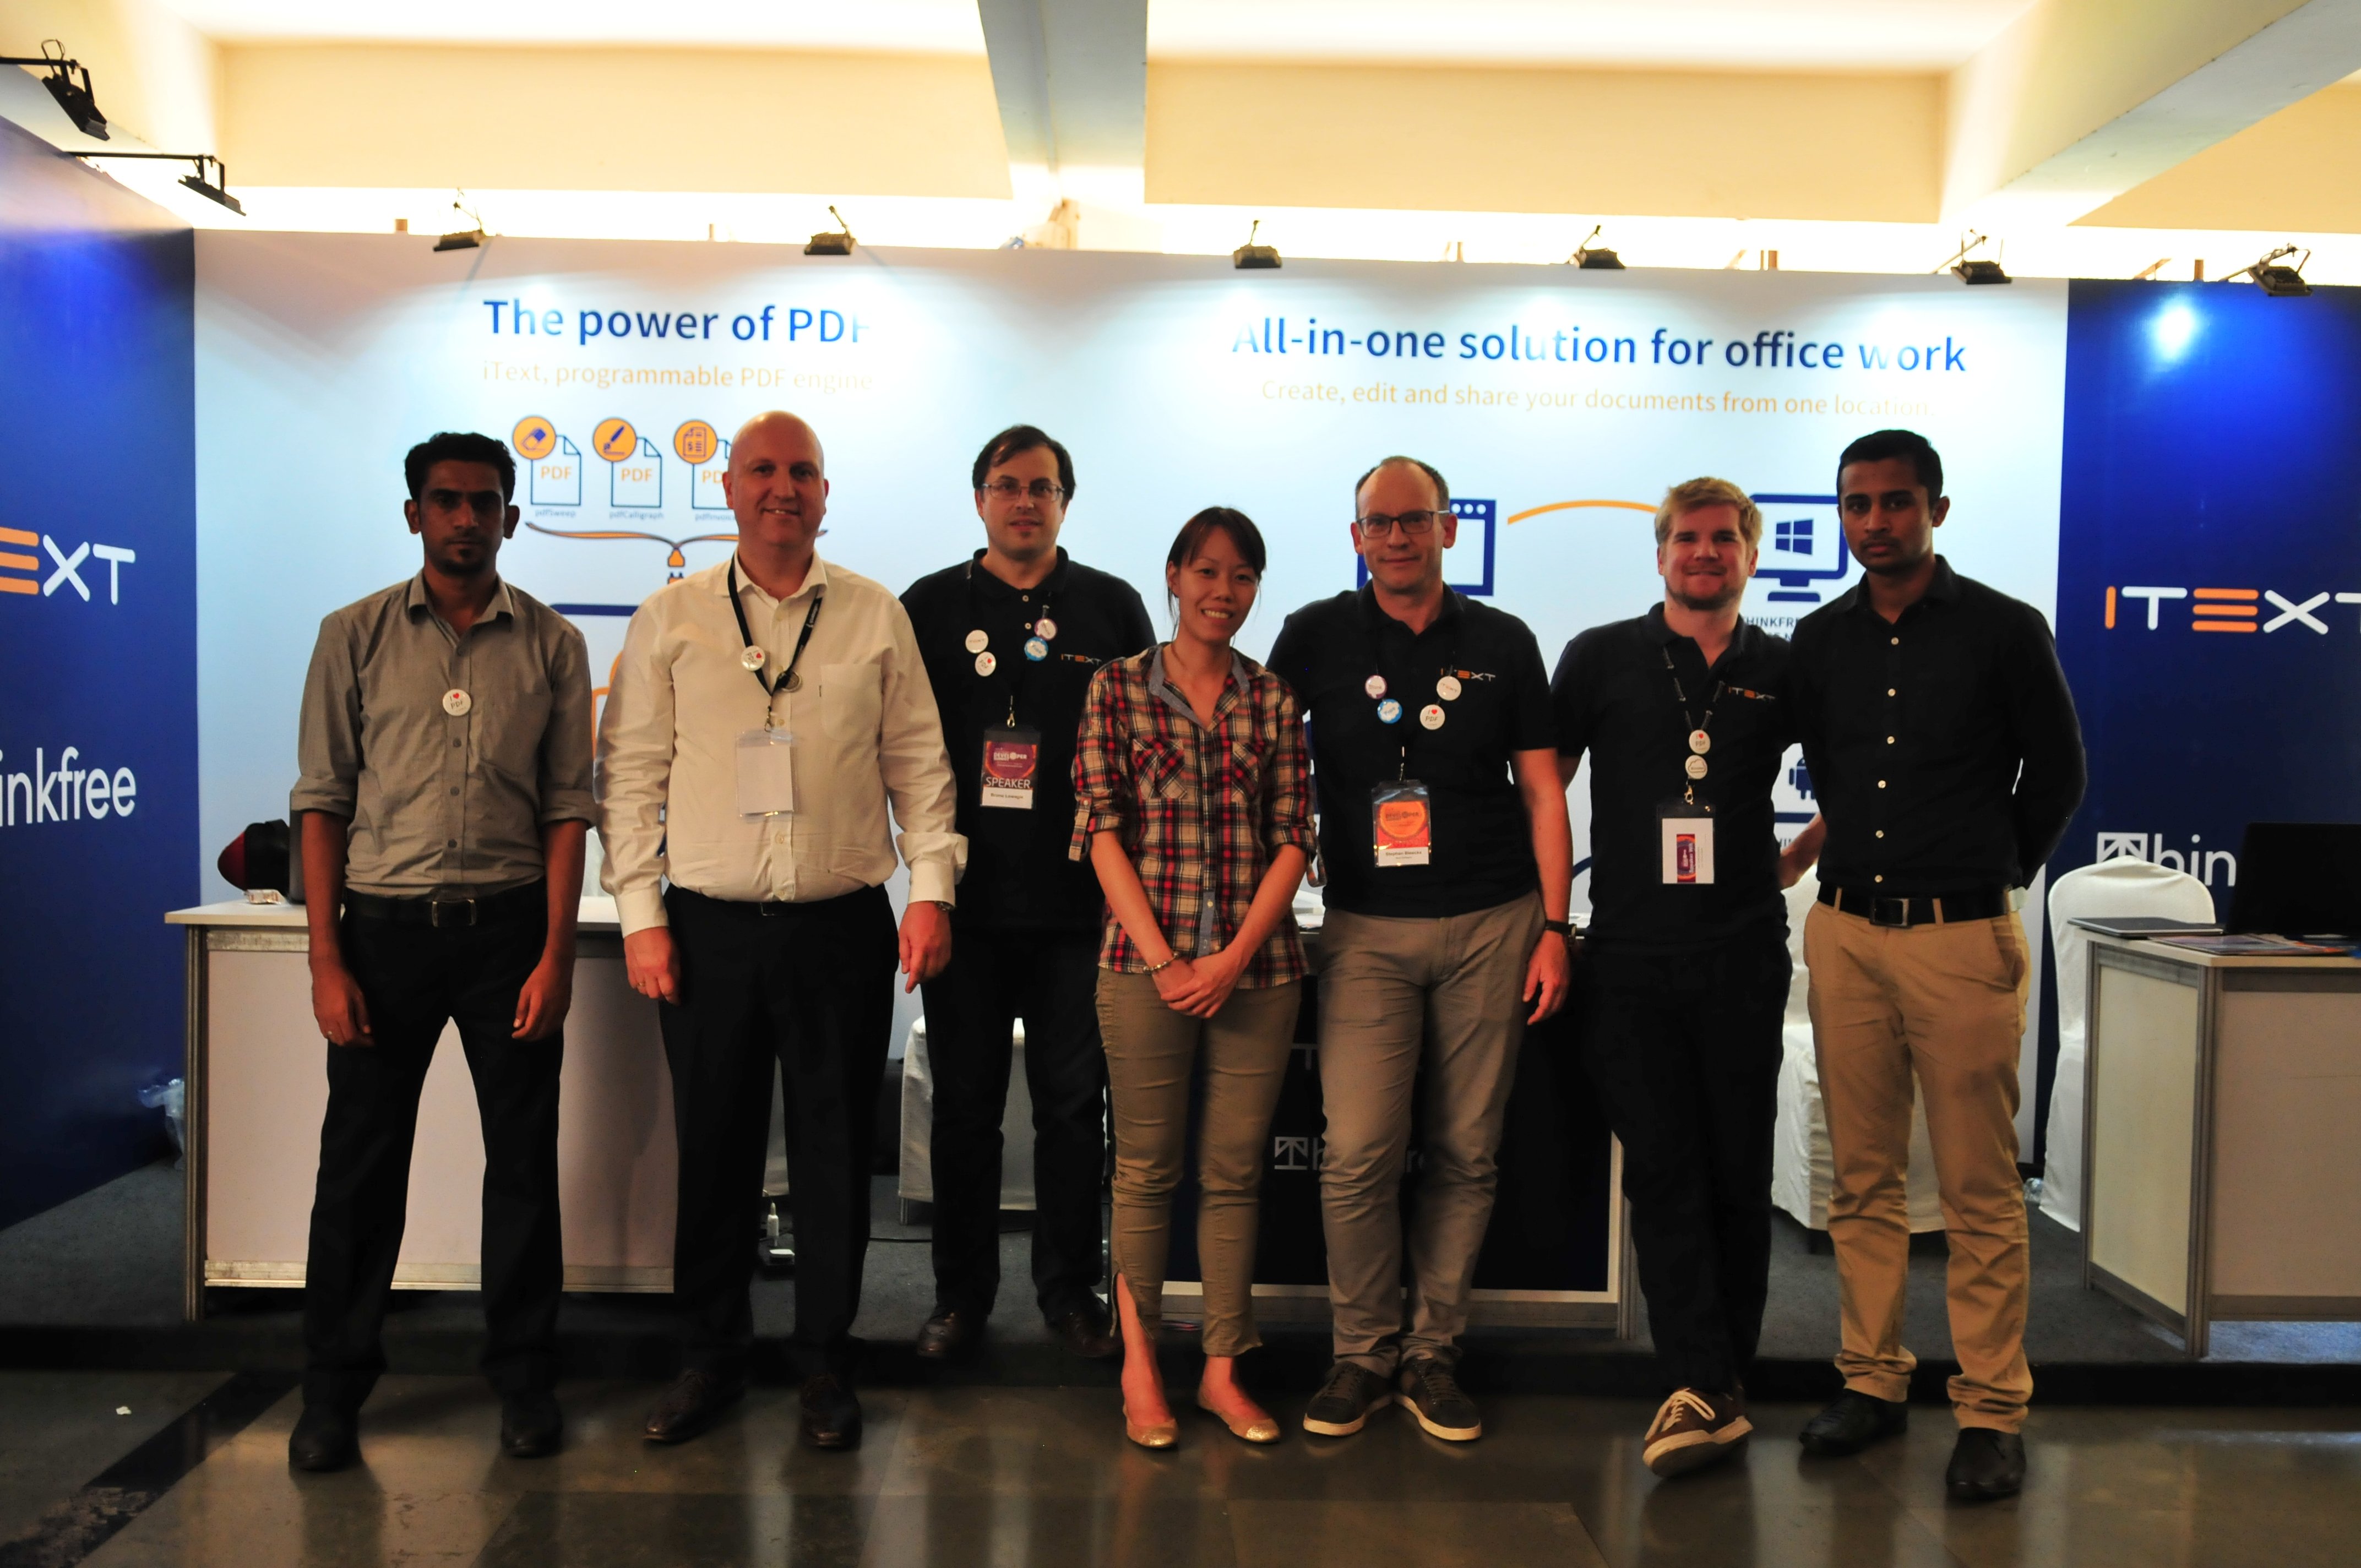 The iText crew at the Great Indian Developer Summit